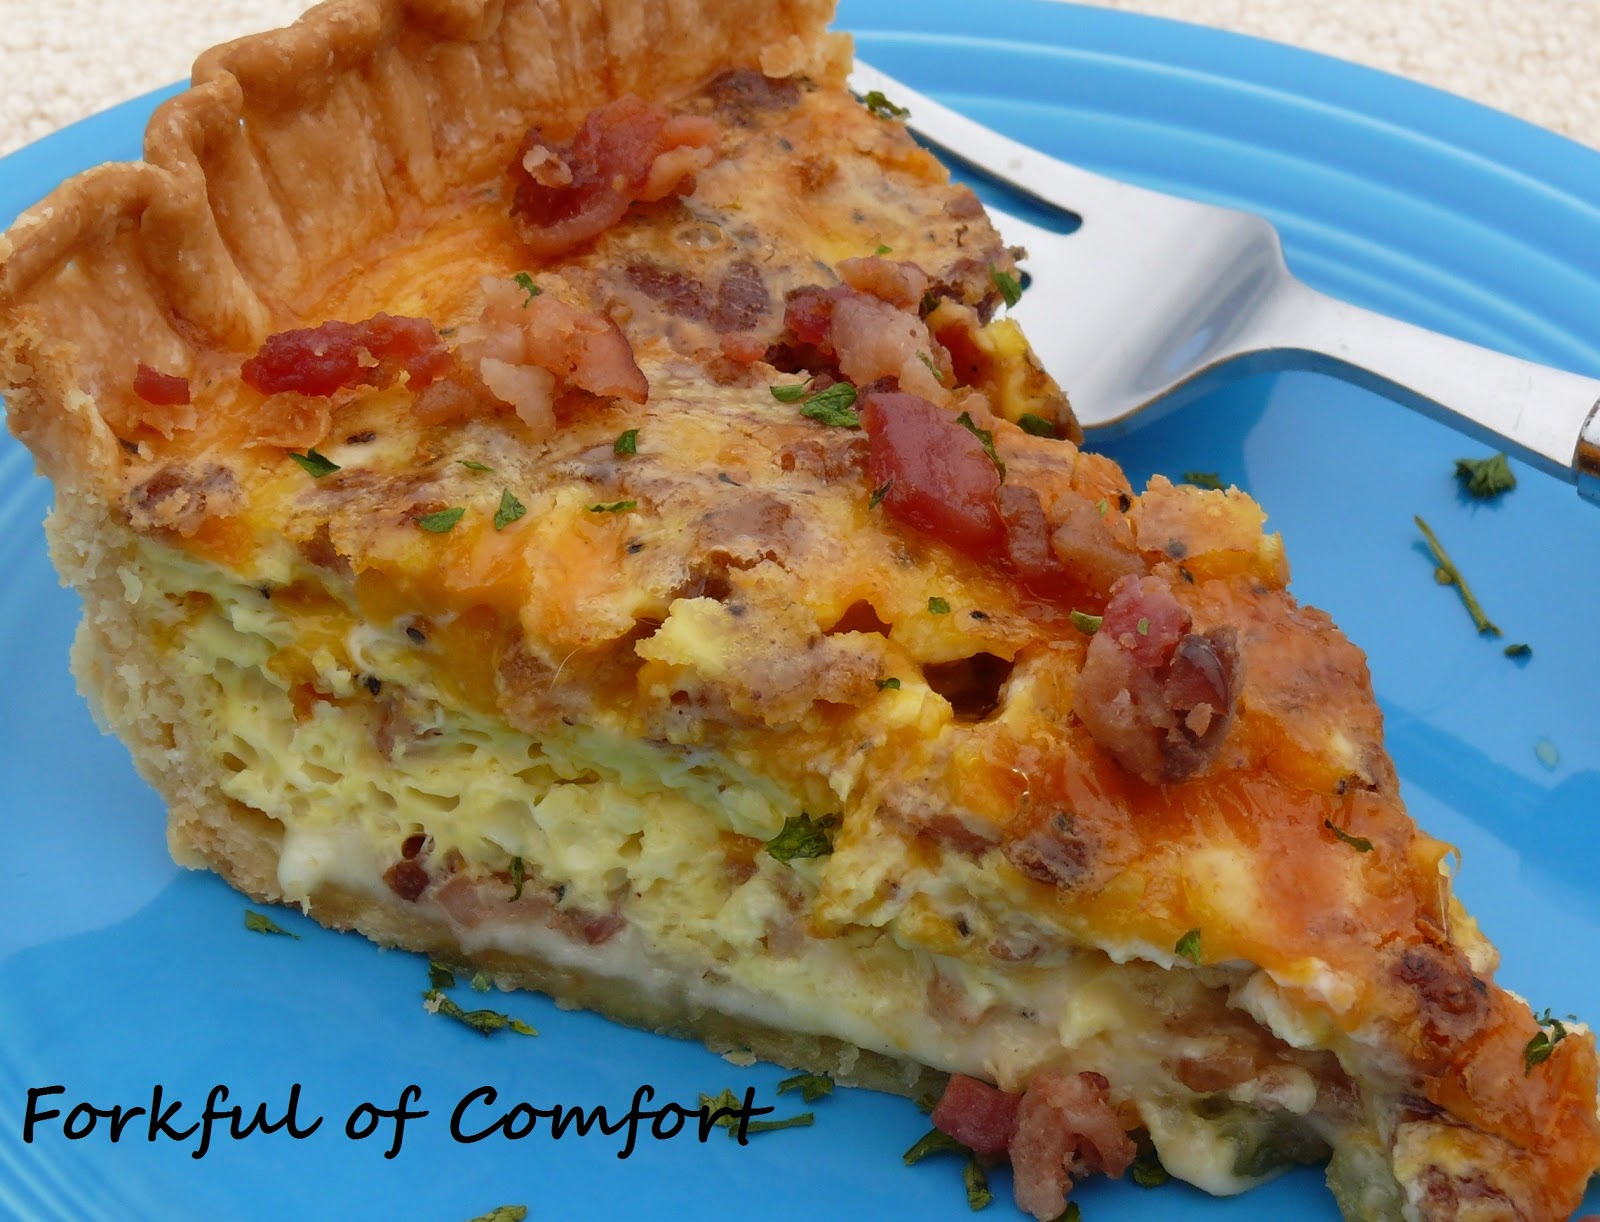 Bacon+&+Cheese+Quiche+3.JPG